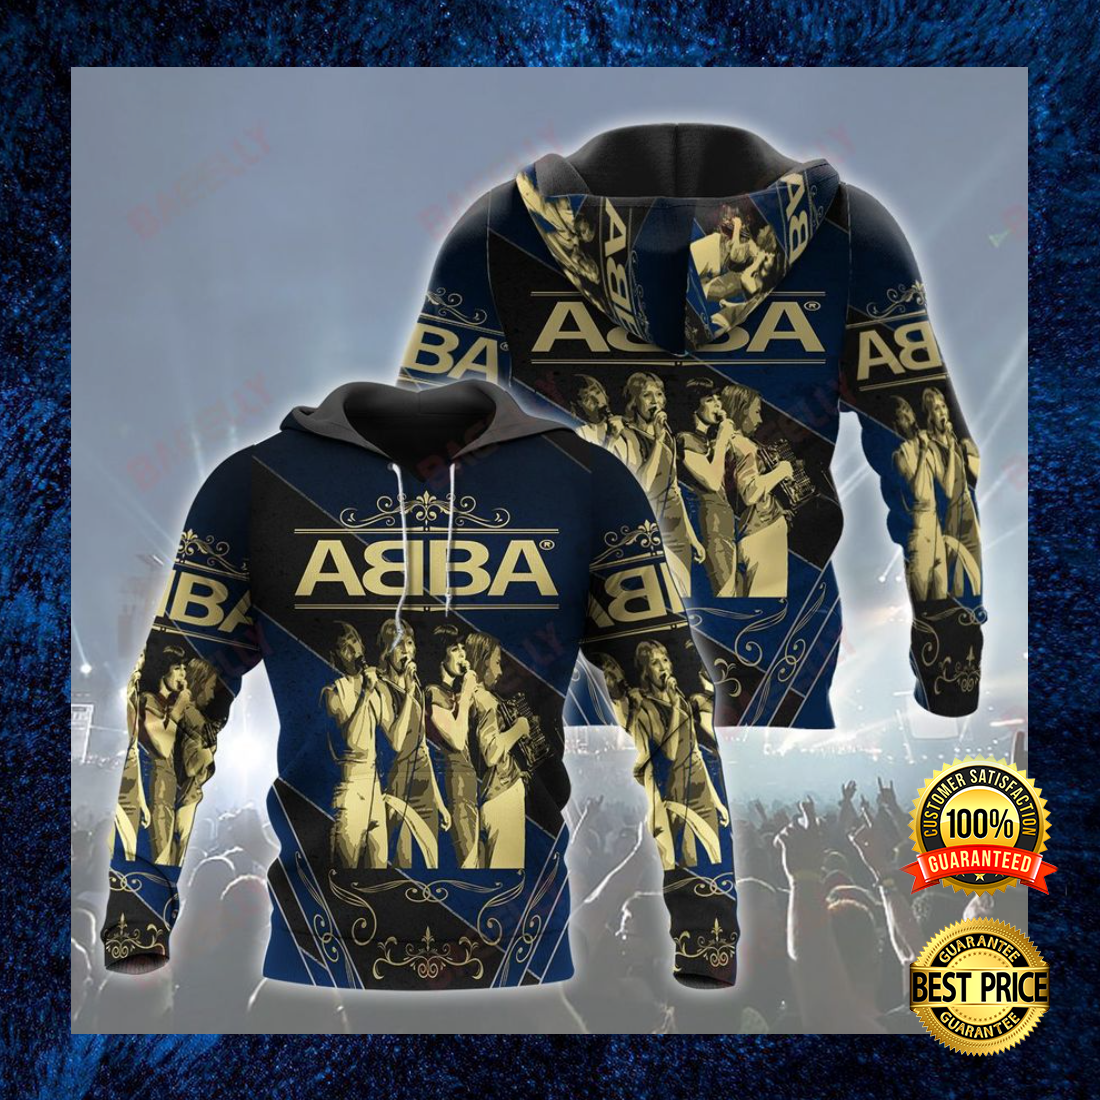 ABBA ALL OVER PRINT 3D HOODIE 7